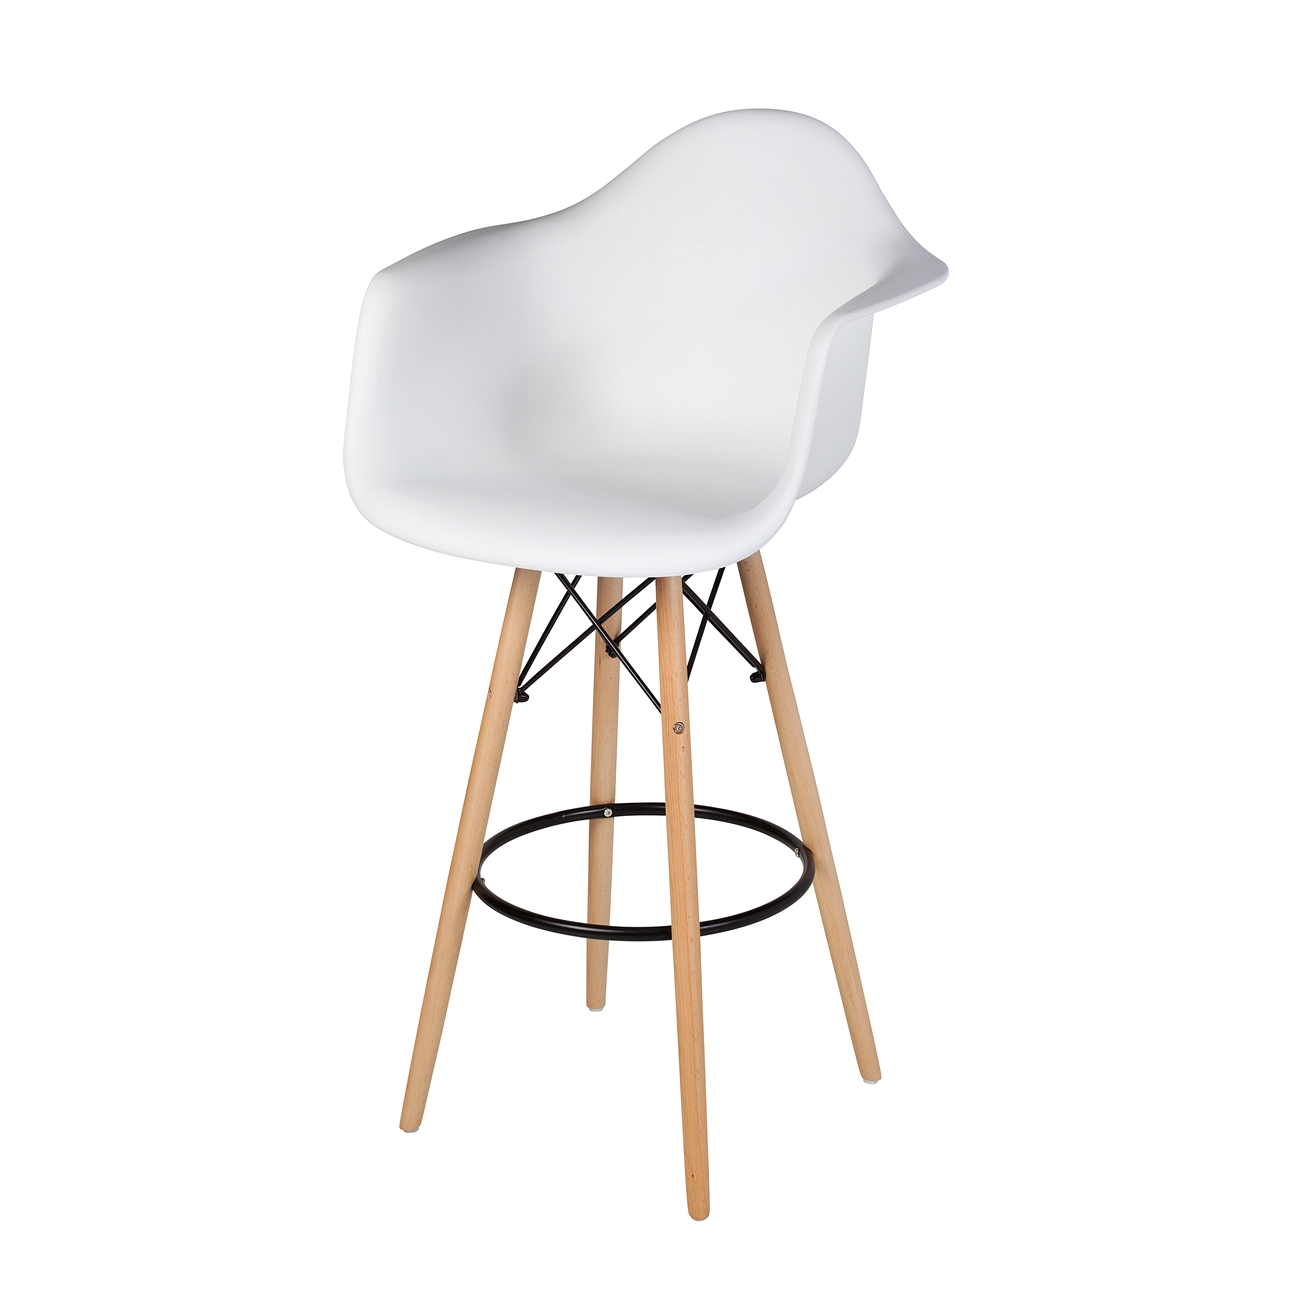 Brilliant Molded Mid Century Bar Stool White Abs Plastic Ocoug Best Dining Table And Chair Ideas Images Ocougorg